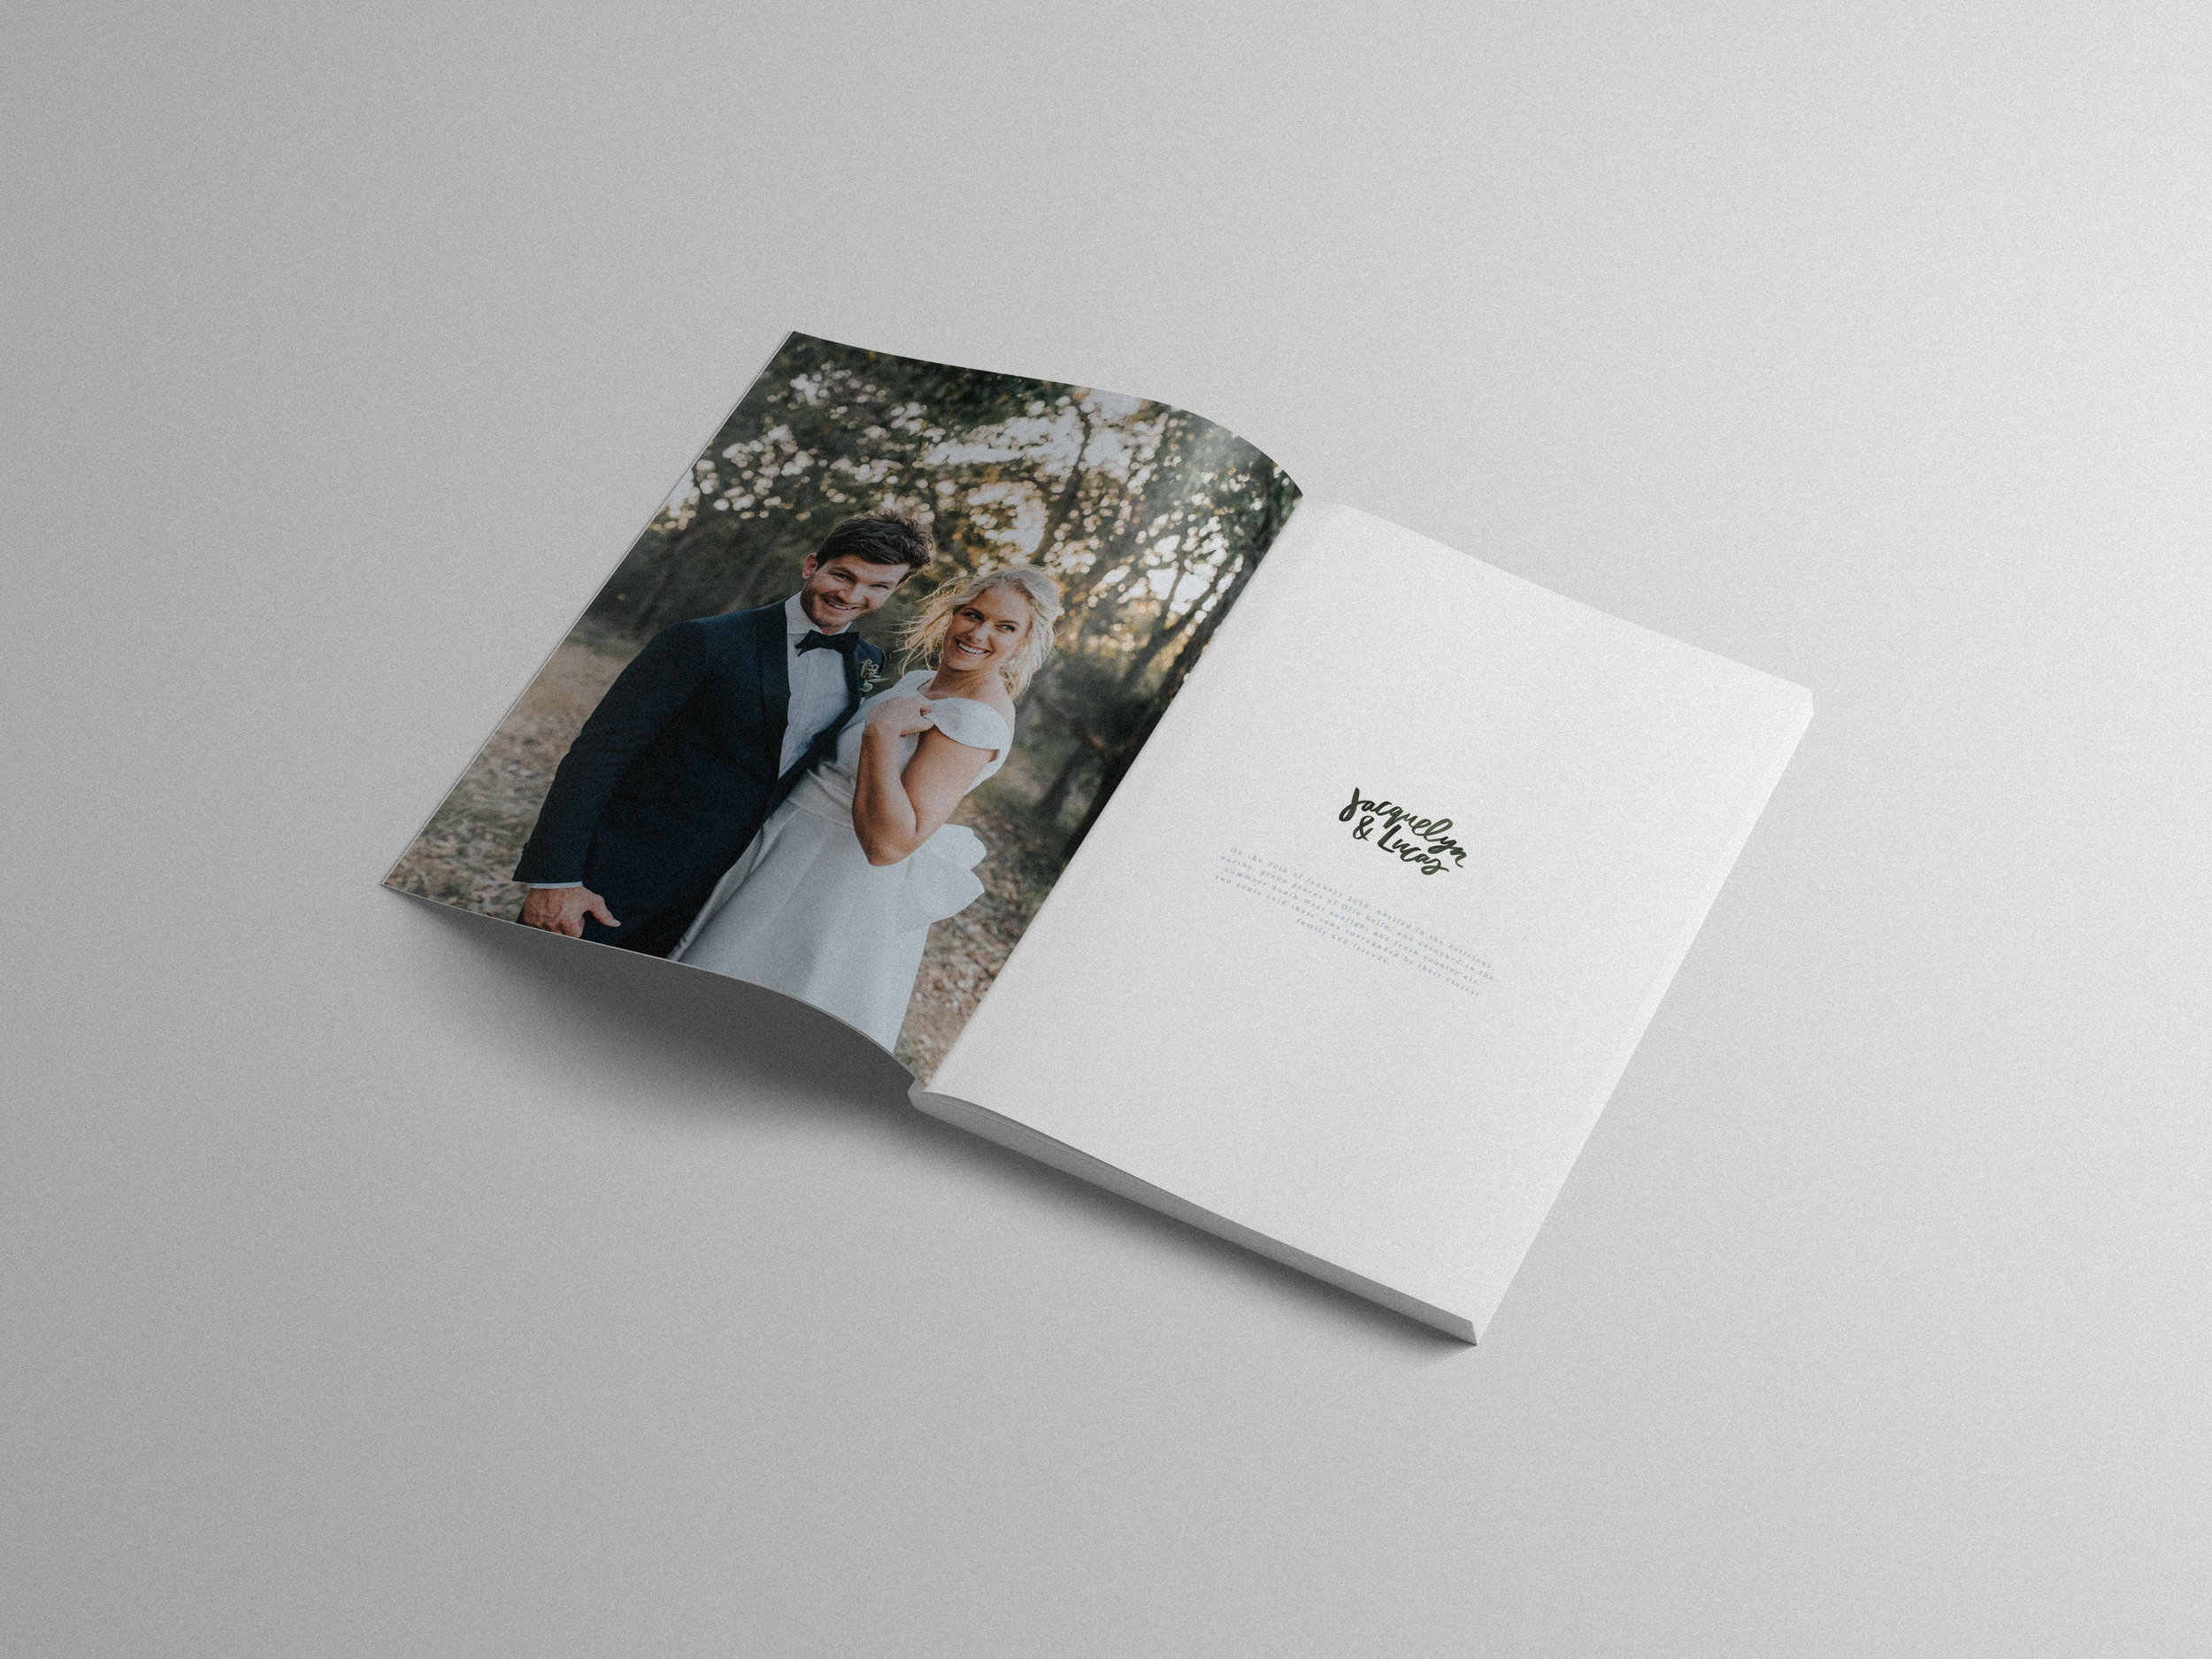 Jacqs-Lucas-Wedding-Zine-Inside-Cover.png